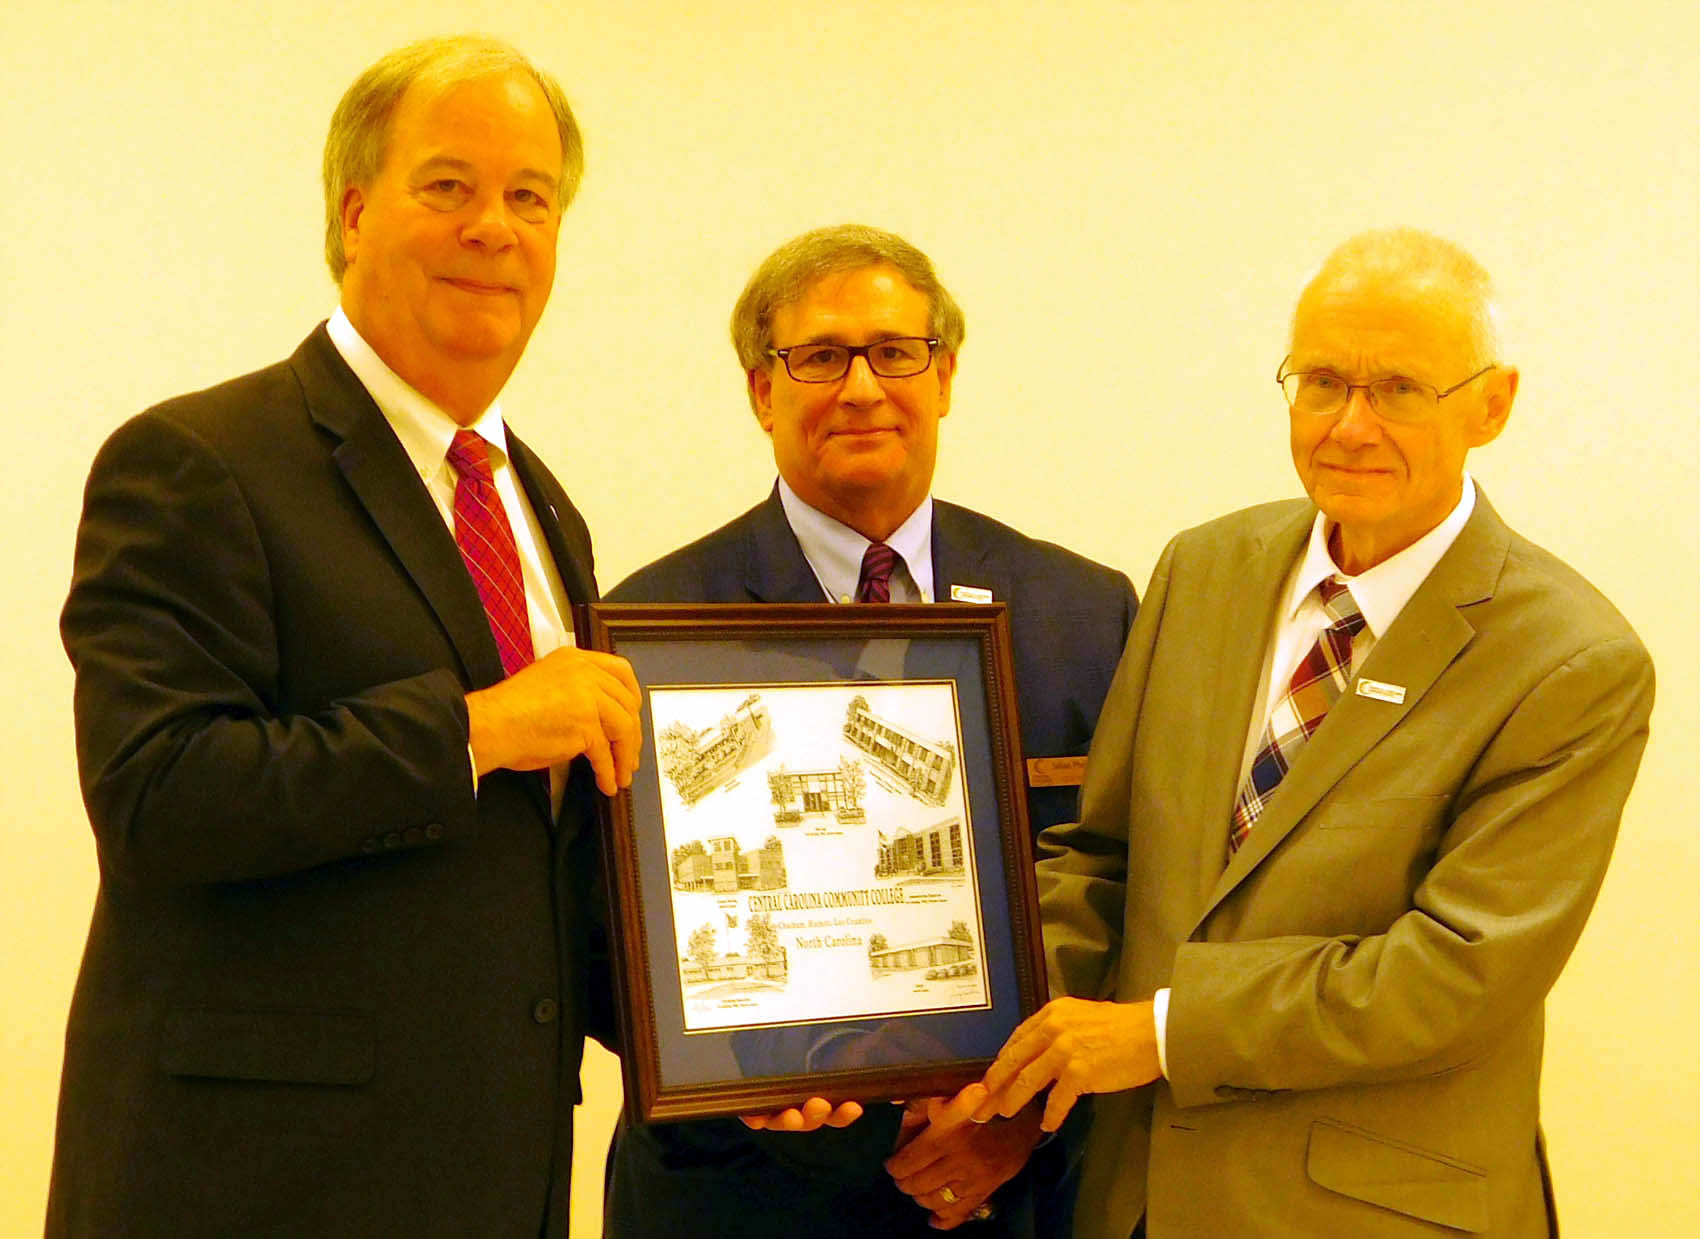 Click to enlarge,  Keith Clark (right), pictured with CCCC President T. Eston Marchant (left) and CCCC Board of Trustees Chairman Julian Philpott (right), was presented with a Jerry Miller print of CCCC buildings, as he was honored for his service as a CCCC Trustee on Wednesday, Aug. 9.